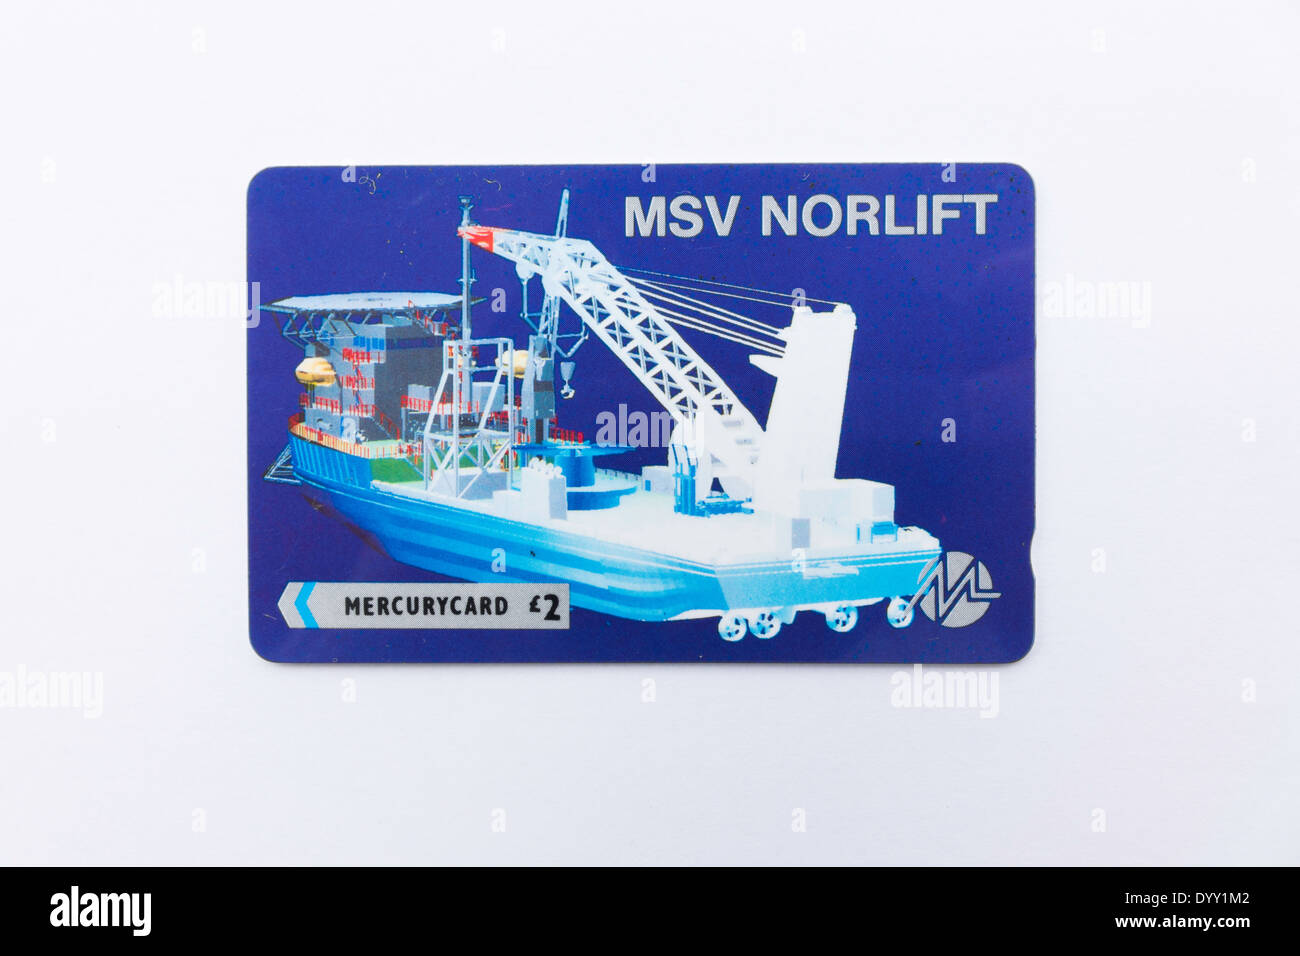 A 1992 Mercury Telephone card depicting the MSV Norlift a construction vessel owned by Cable and Wireless subsidiary NOS. - Stock Image